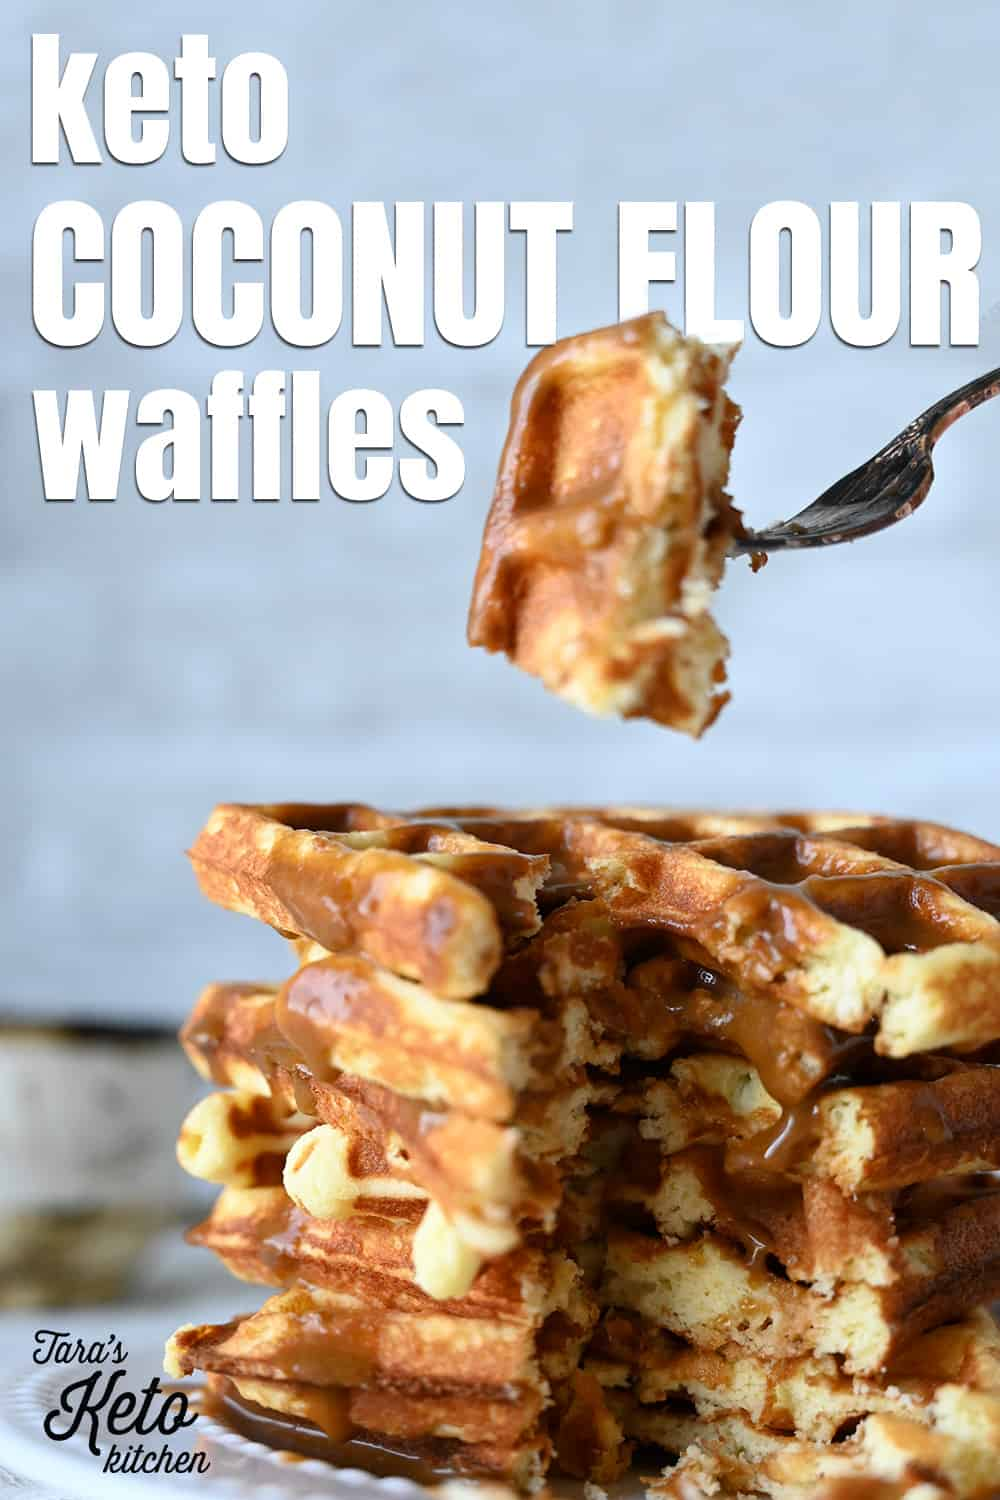 Keto Coconut Flour Waffles stacked together with title